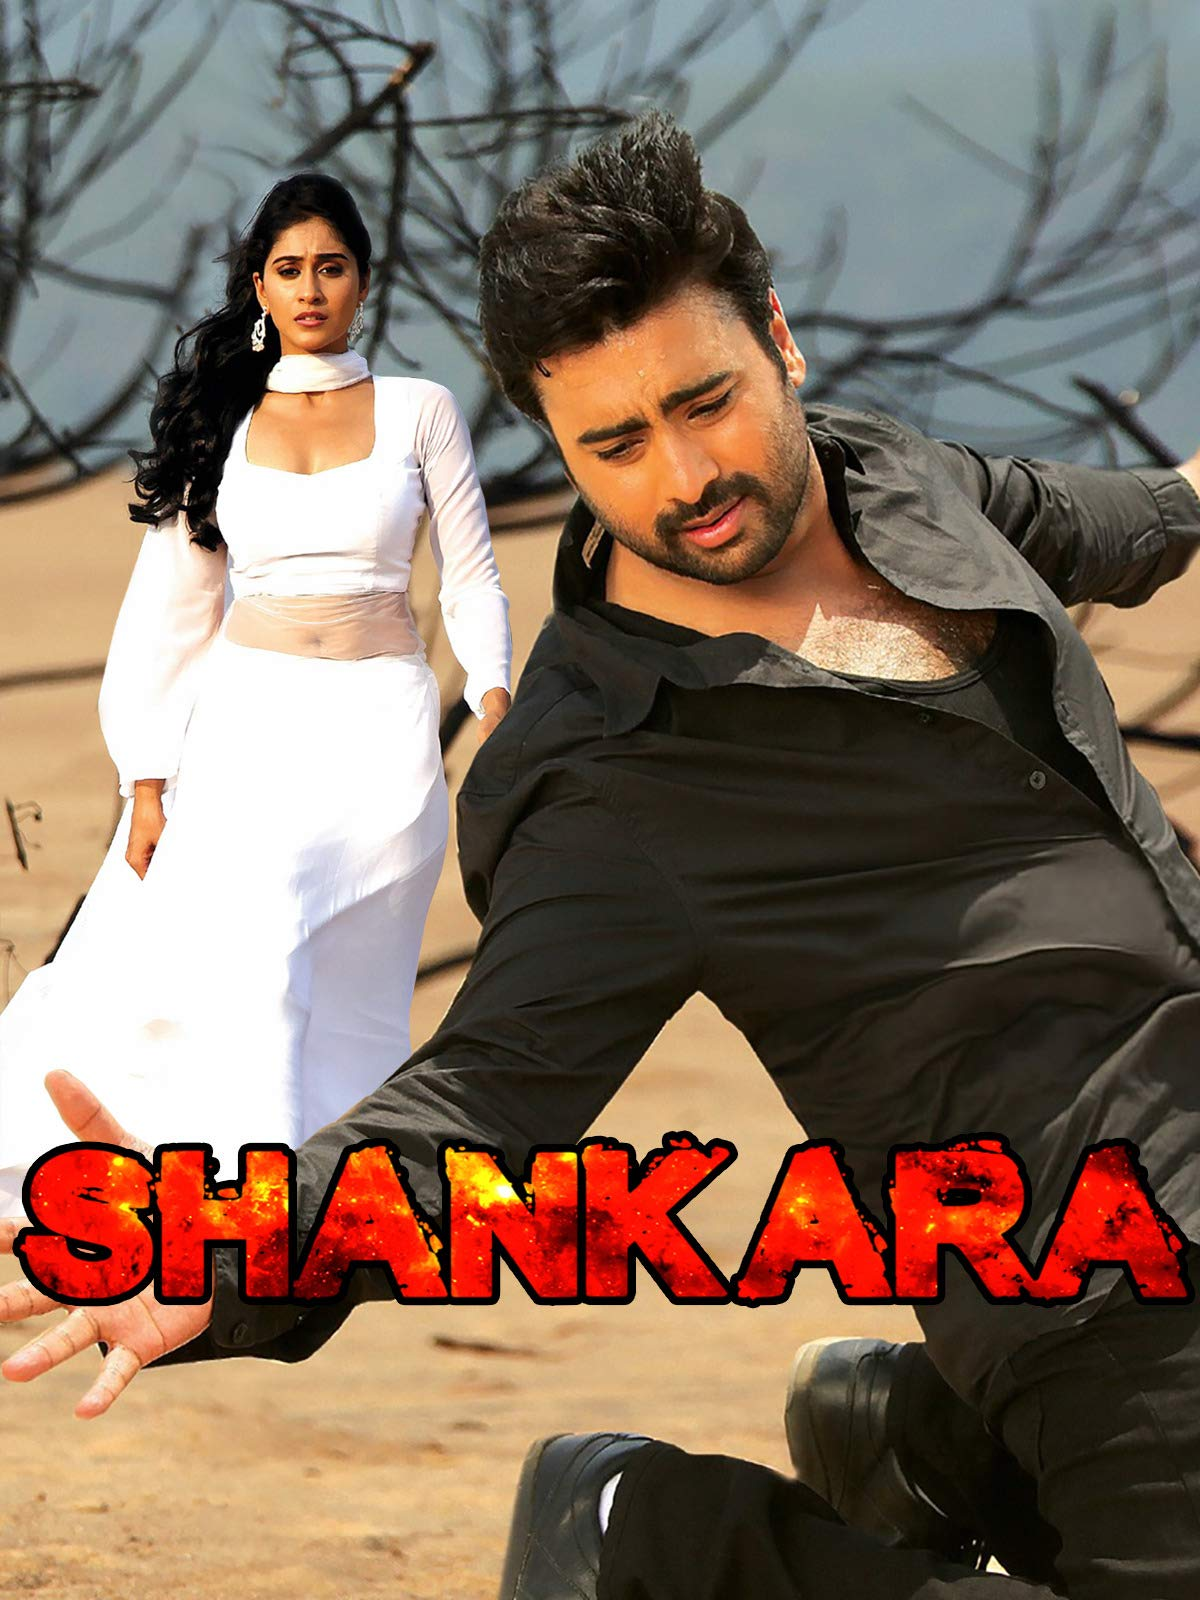 Shankara 2020 Hindi Dubbed Movie 720p HDRip 800MB x264 AAC